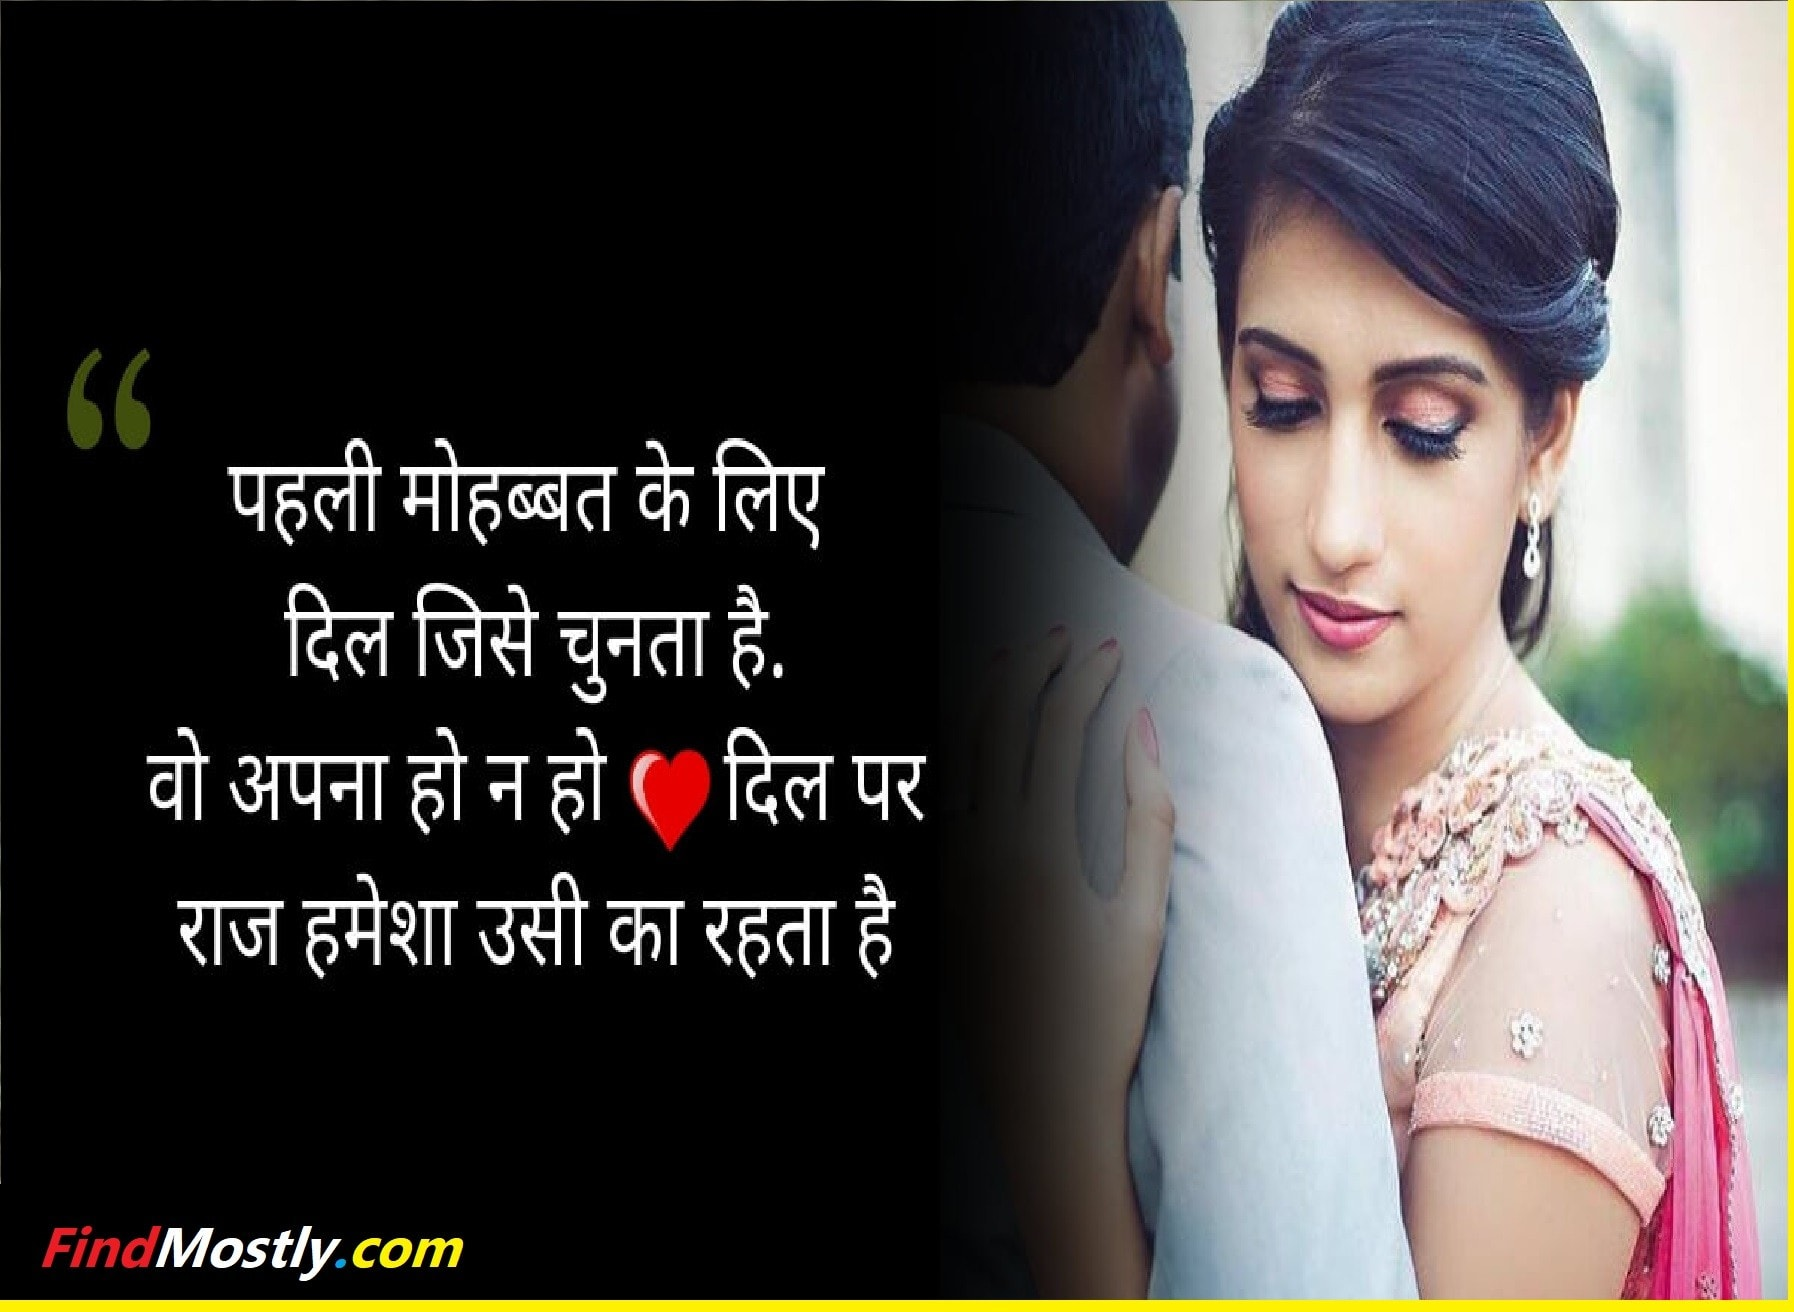 Pyar Bhari Shayari in Hindi